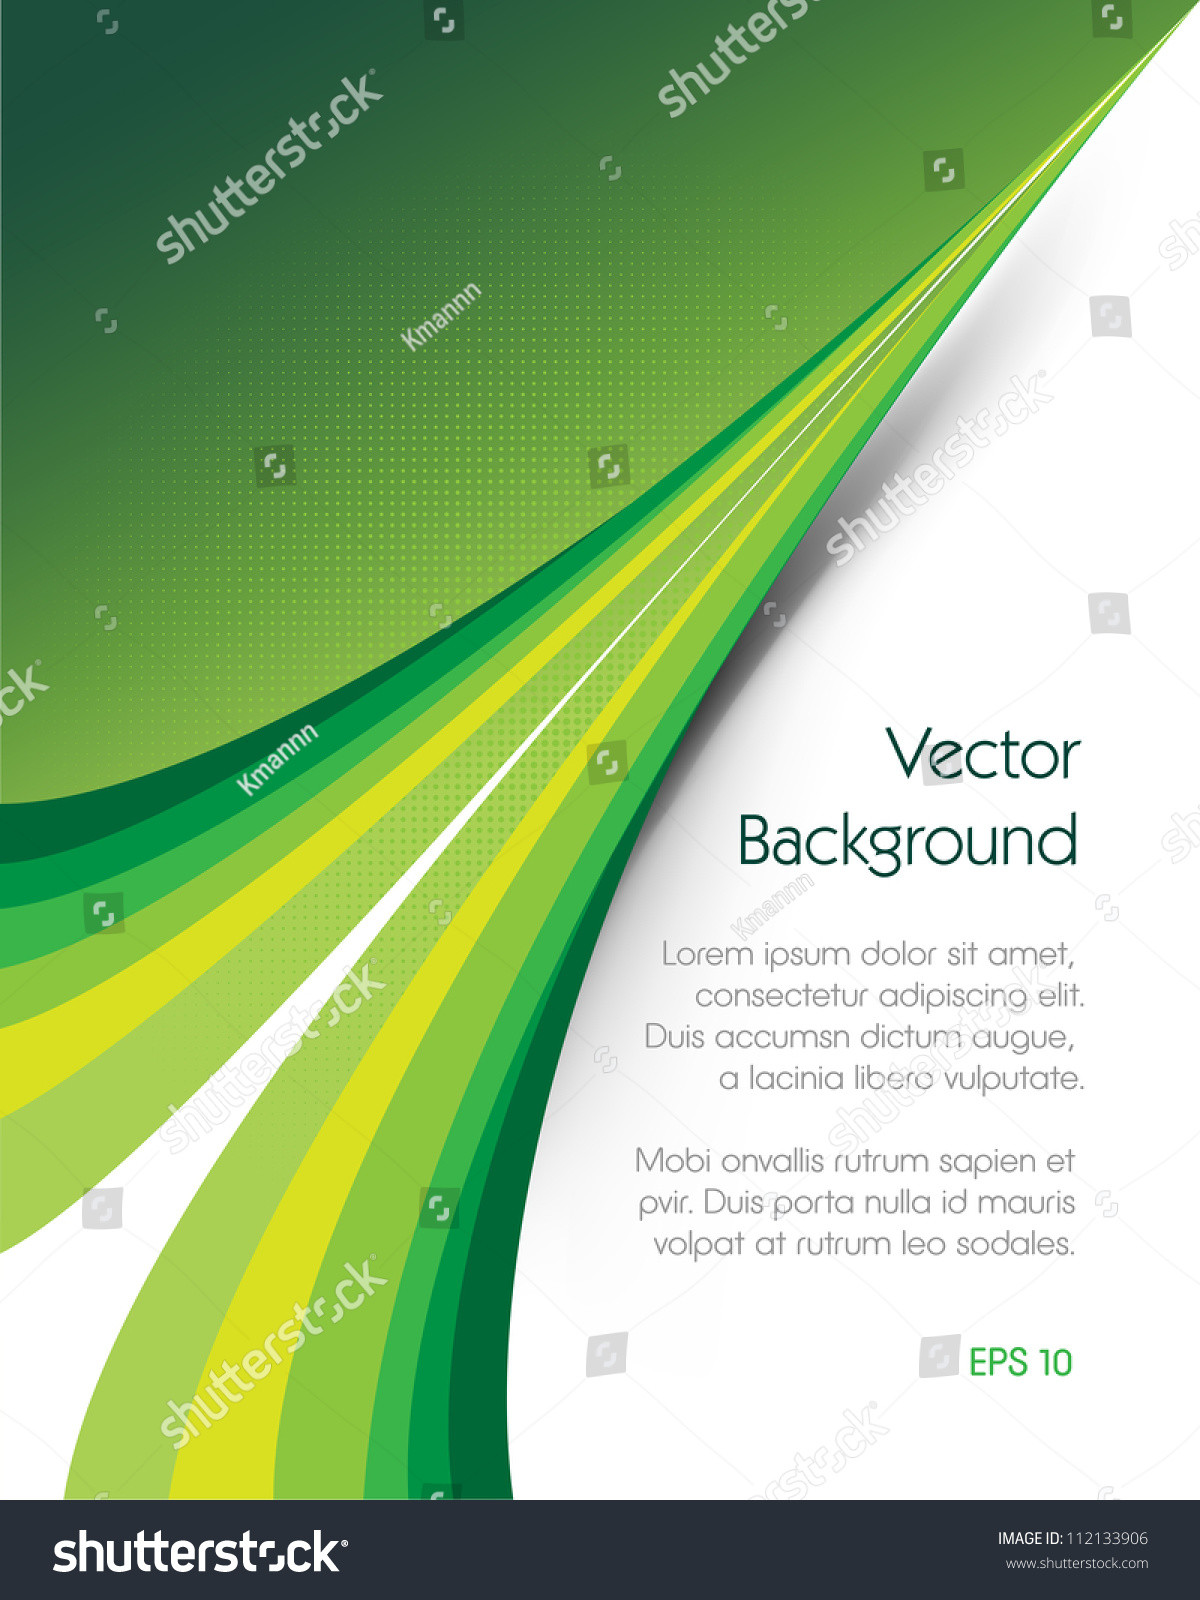 Green brochure vector background this image stock vector Vector image software